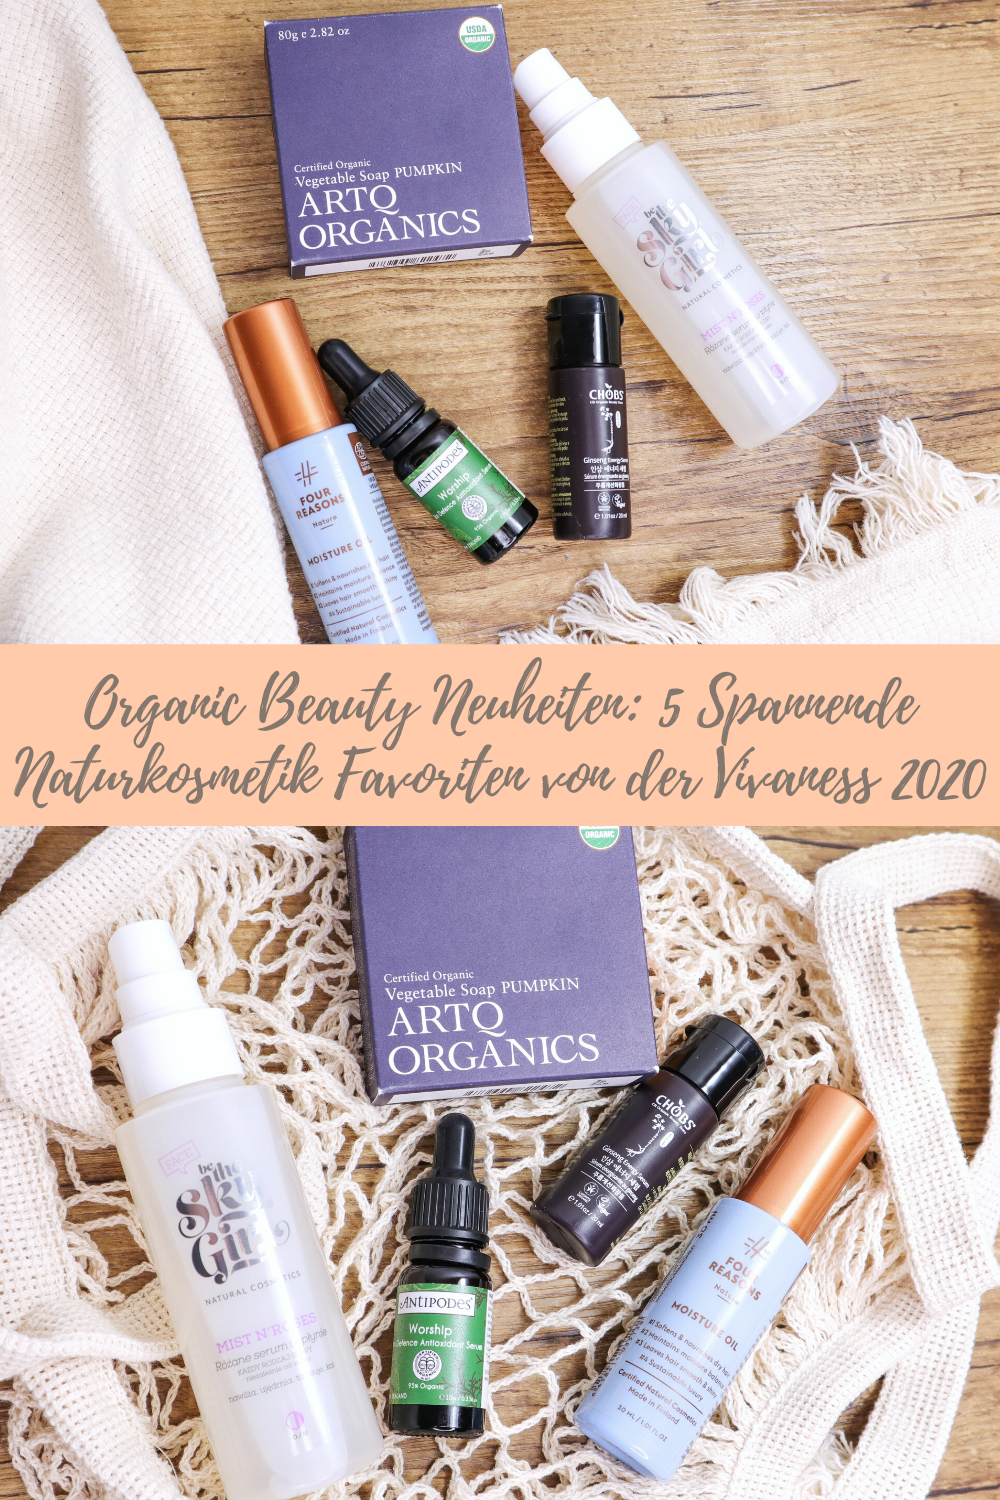 Organic Beauty: 5 Spannende Naturkosmetik Favoriten der Vivaness 2020